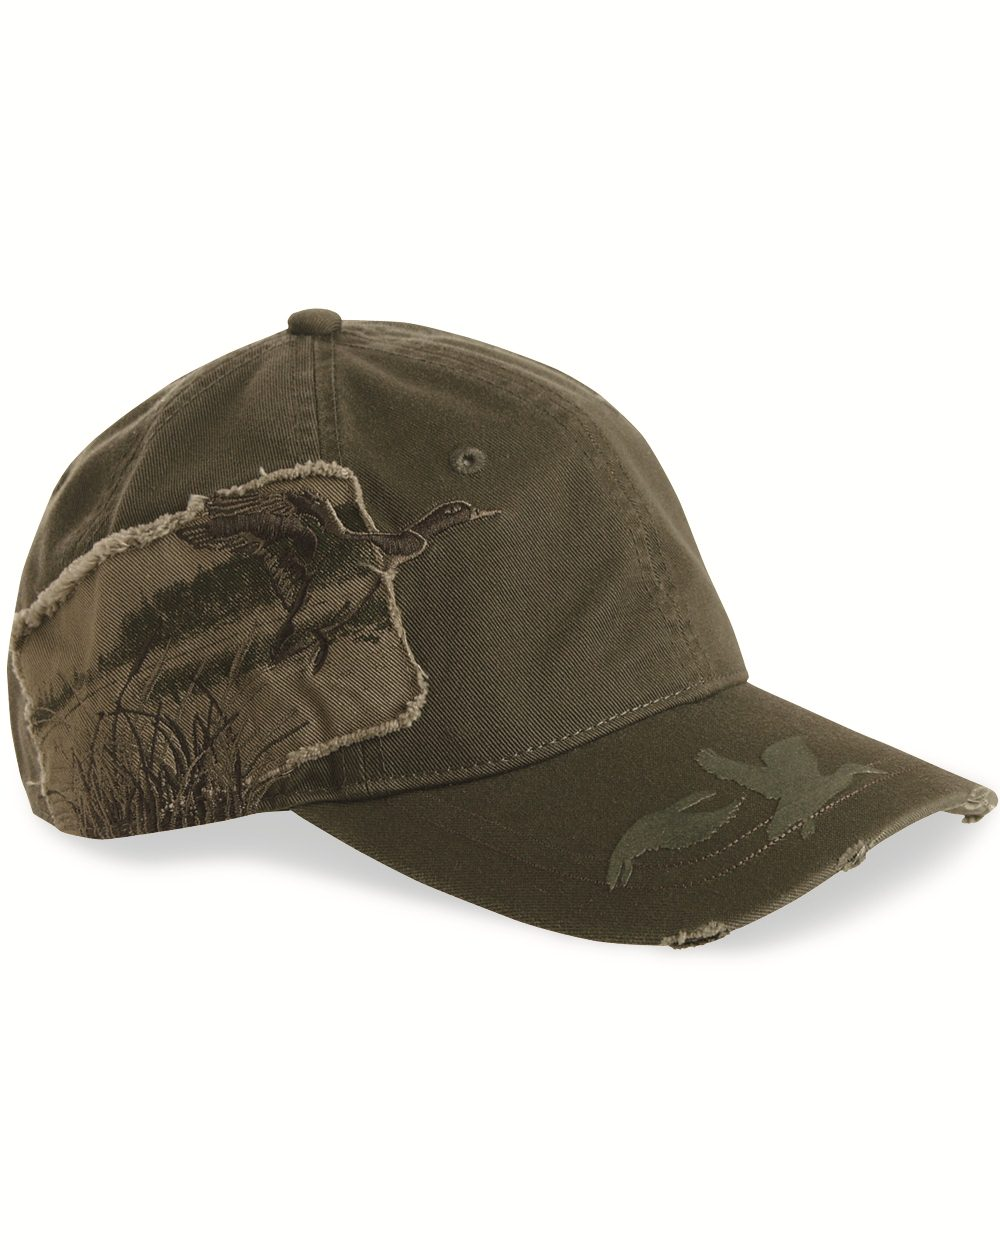 DRI DUCK Applique Mallard Cap - 3299